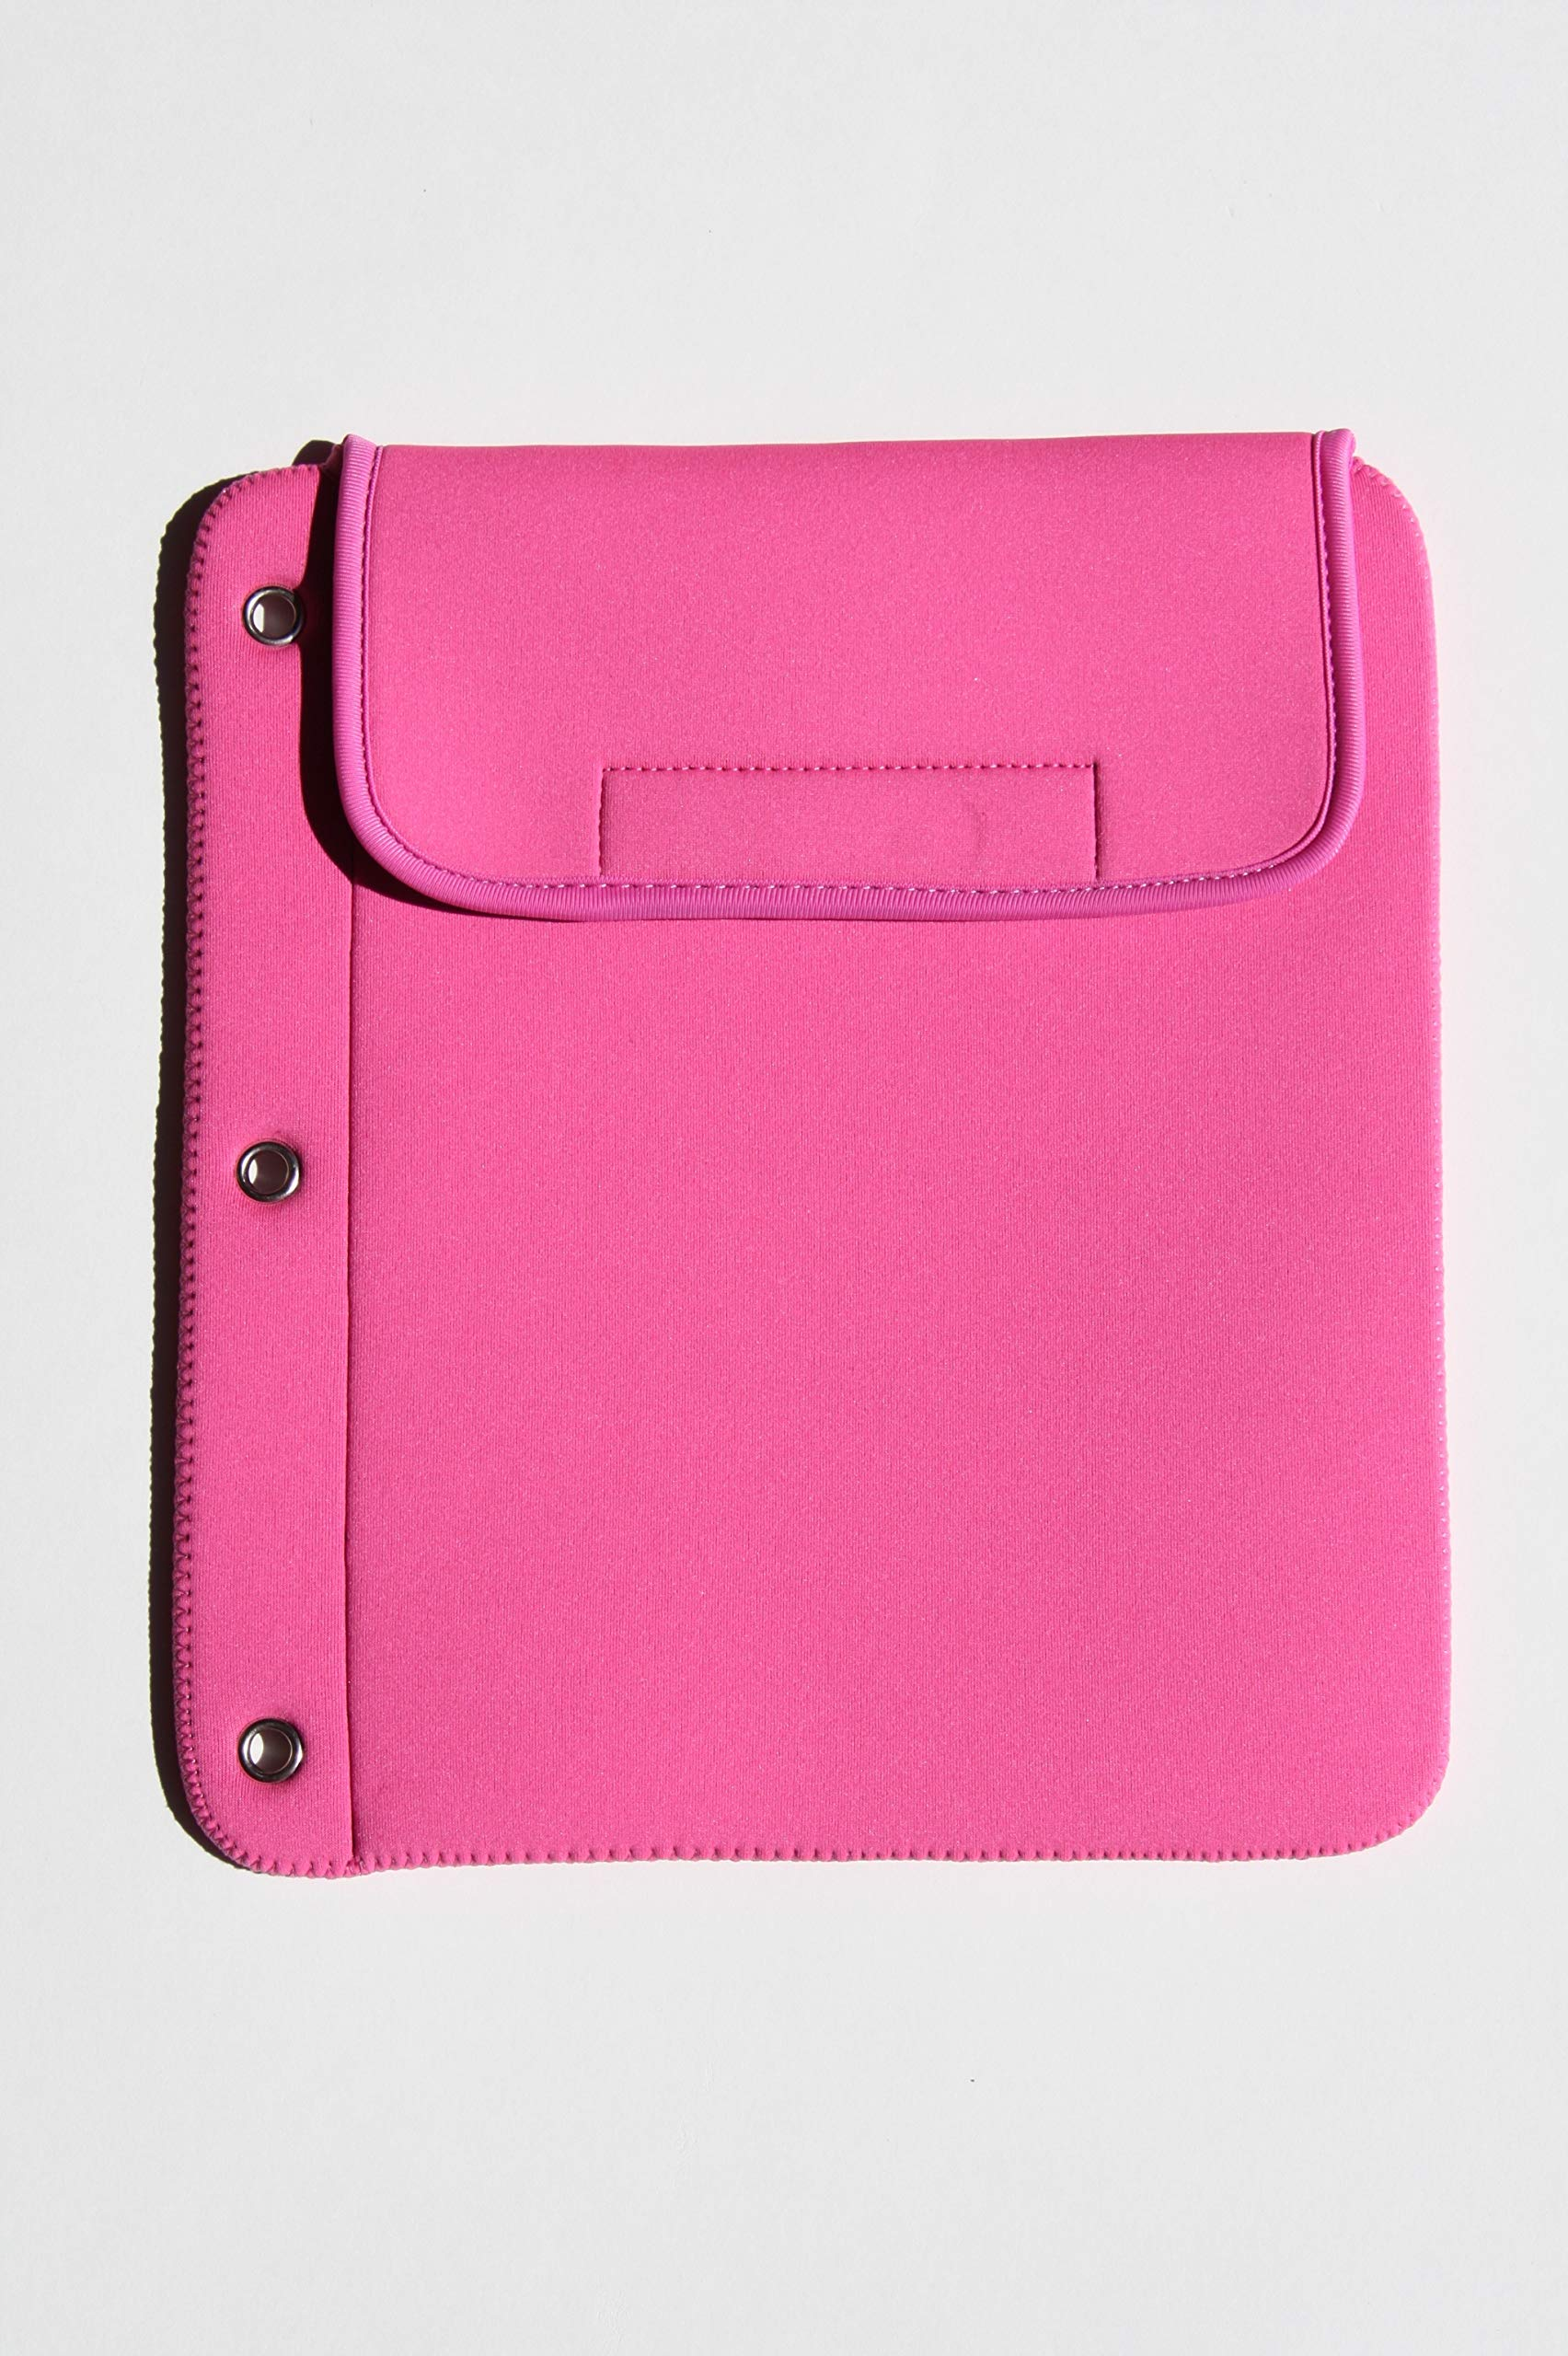 Tablet Cubbie Protective Patented 3-Ring Binder Neoprene Sleeve Case for iPad, e-Reader, Kindle, Tablets [iPad Air, iPad Mini, iPad Pro 9.7] Fits Over 40 Devices (Pink)